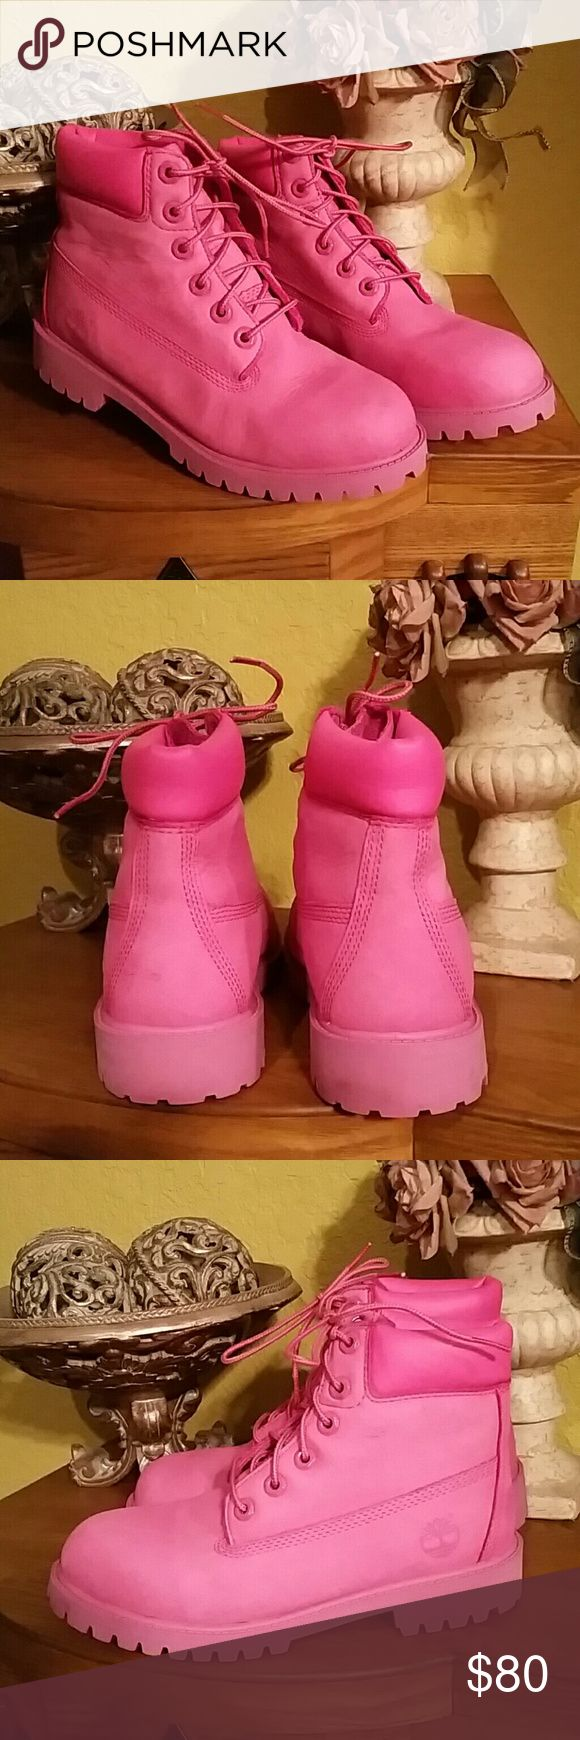 "PINK LEATHER TIMBERLAND BOOTS SZ 37.5 EUC Lightly worn bright pink Timberland waterproof  premiun rose nubuck junior short lace up boots 6"""" a pink rubber lug sole pink laces. Very clean. Youth sz 5  Same as ladies sz 7.5 UK size 37.5. Youth sz 5. Timberland Shoes Ankle Boots & Booties"